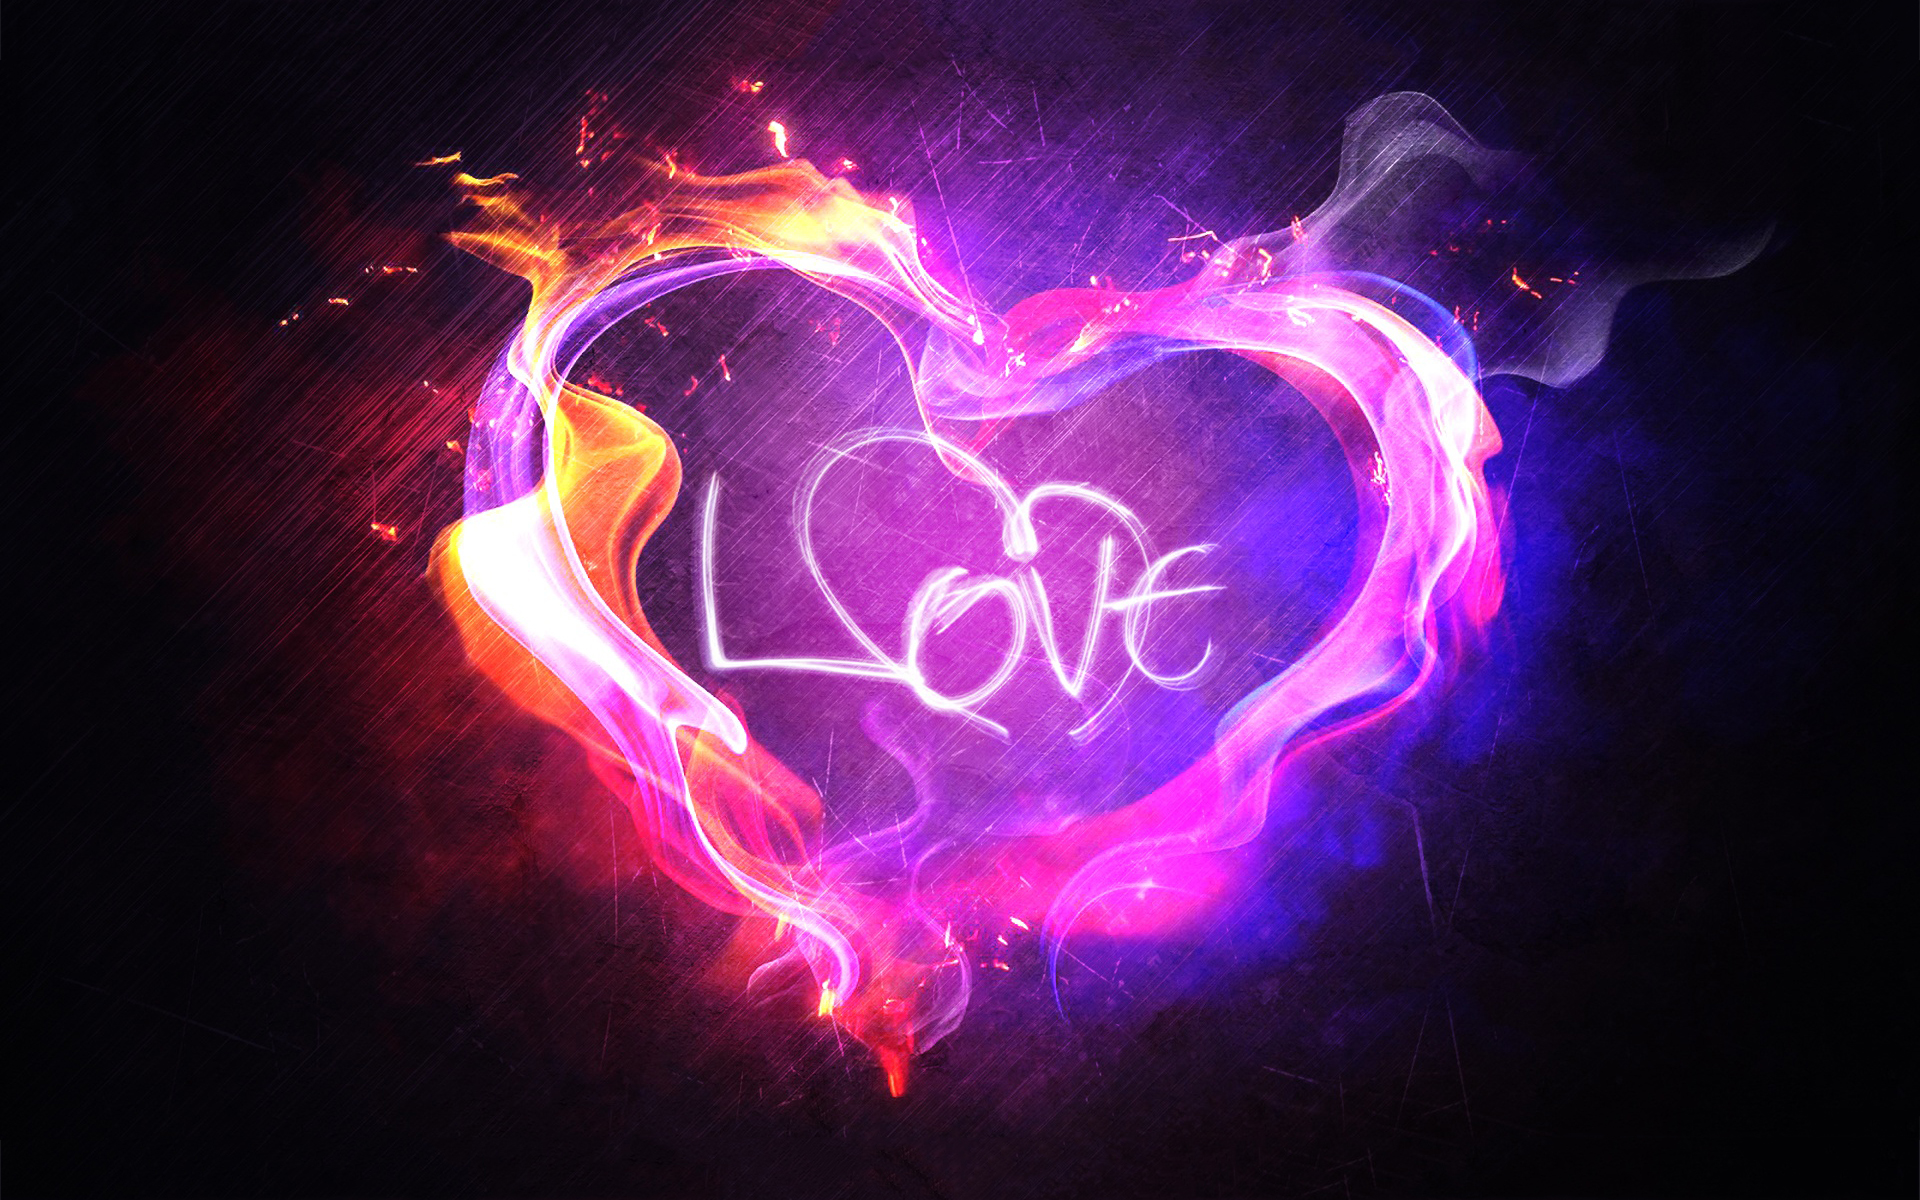 Heart Love Flame Wallpapers Pictures Photos Images Chainimage 1920x1200